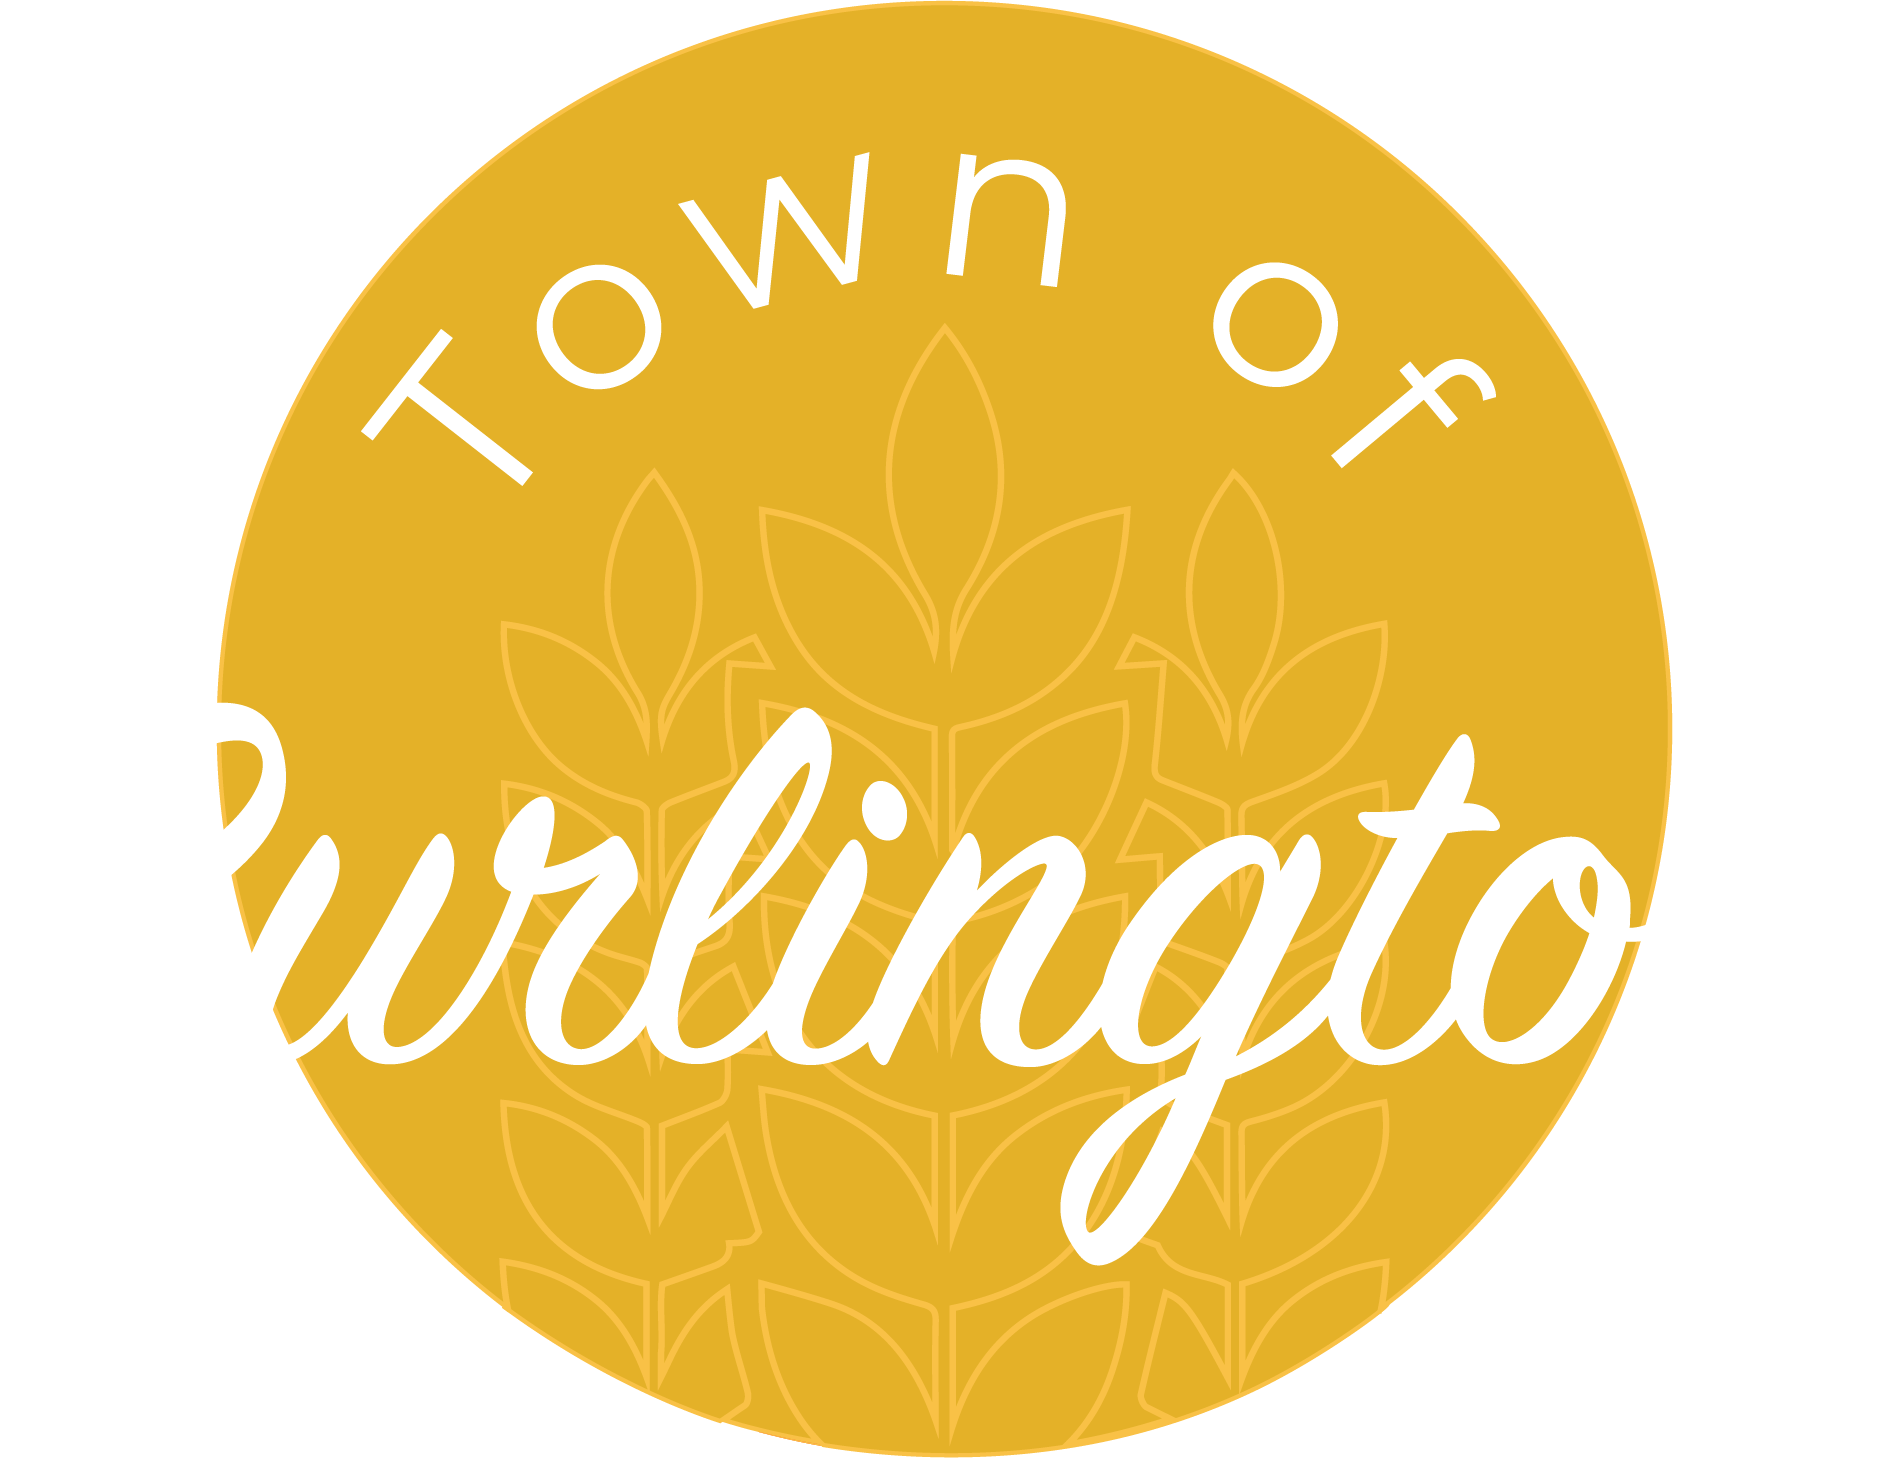 Town of Burlington, WI